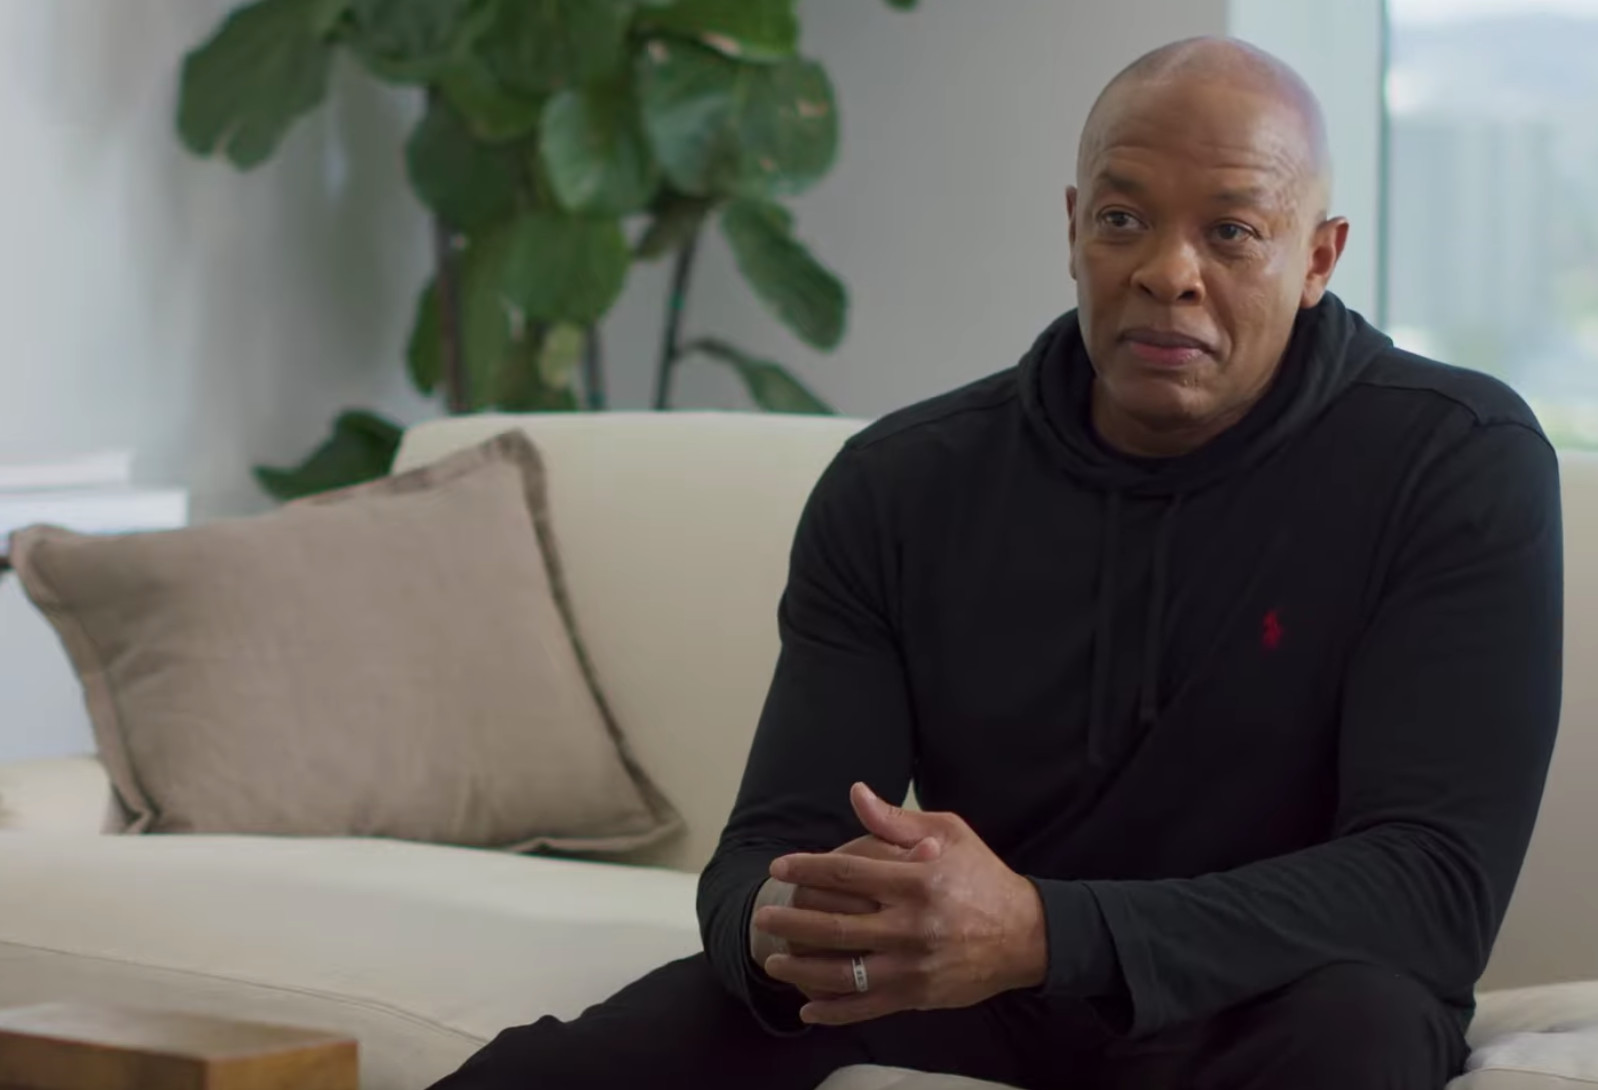 Dr. Dre and Jimmy Iovine Reflect on '2001' for Album's 20th Anniversary